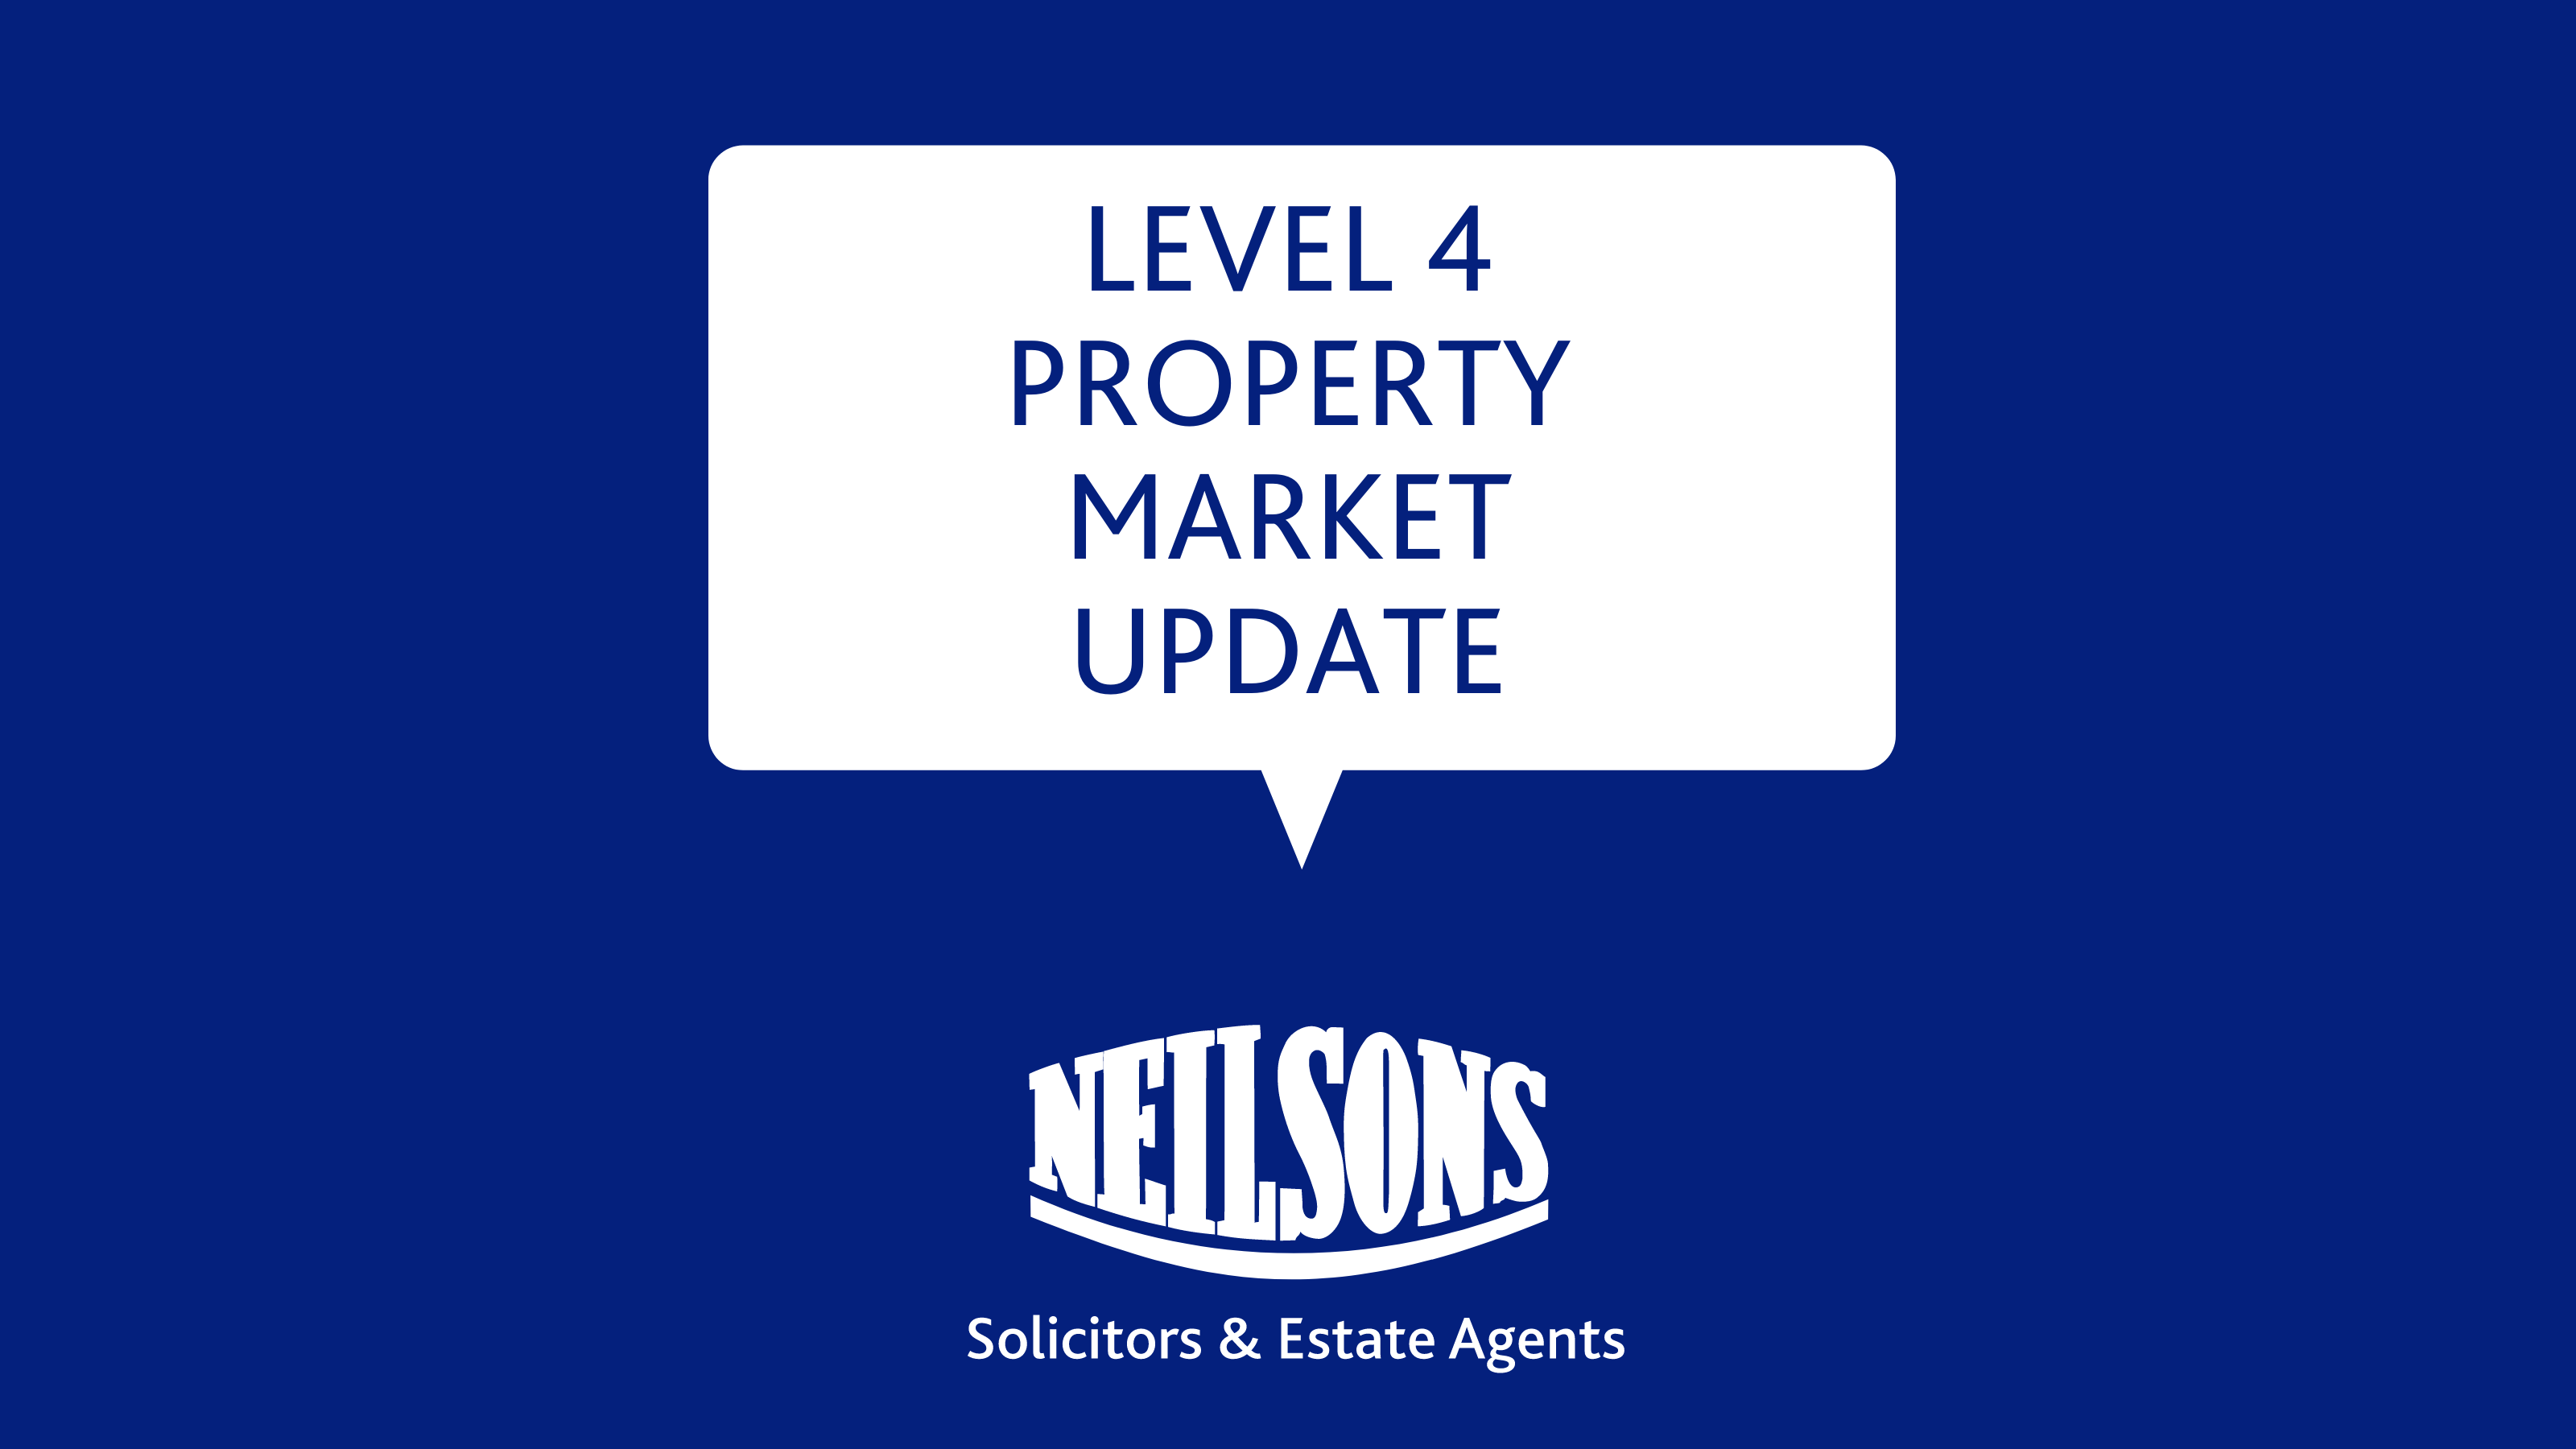 Level 4 Property Market Scotland